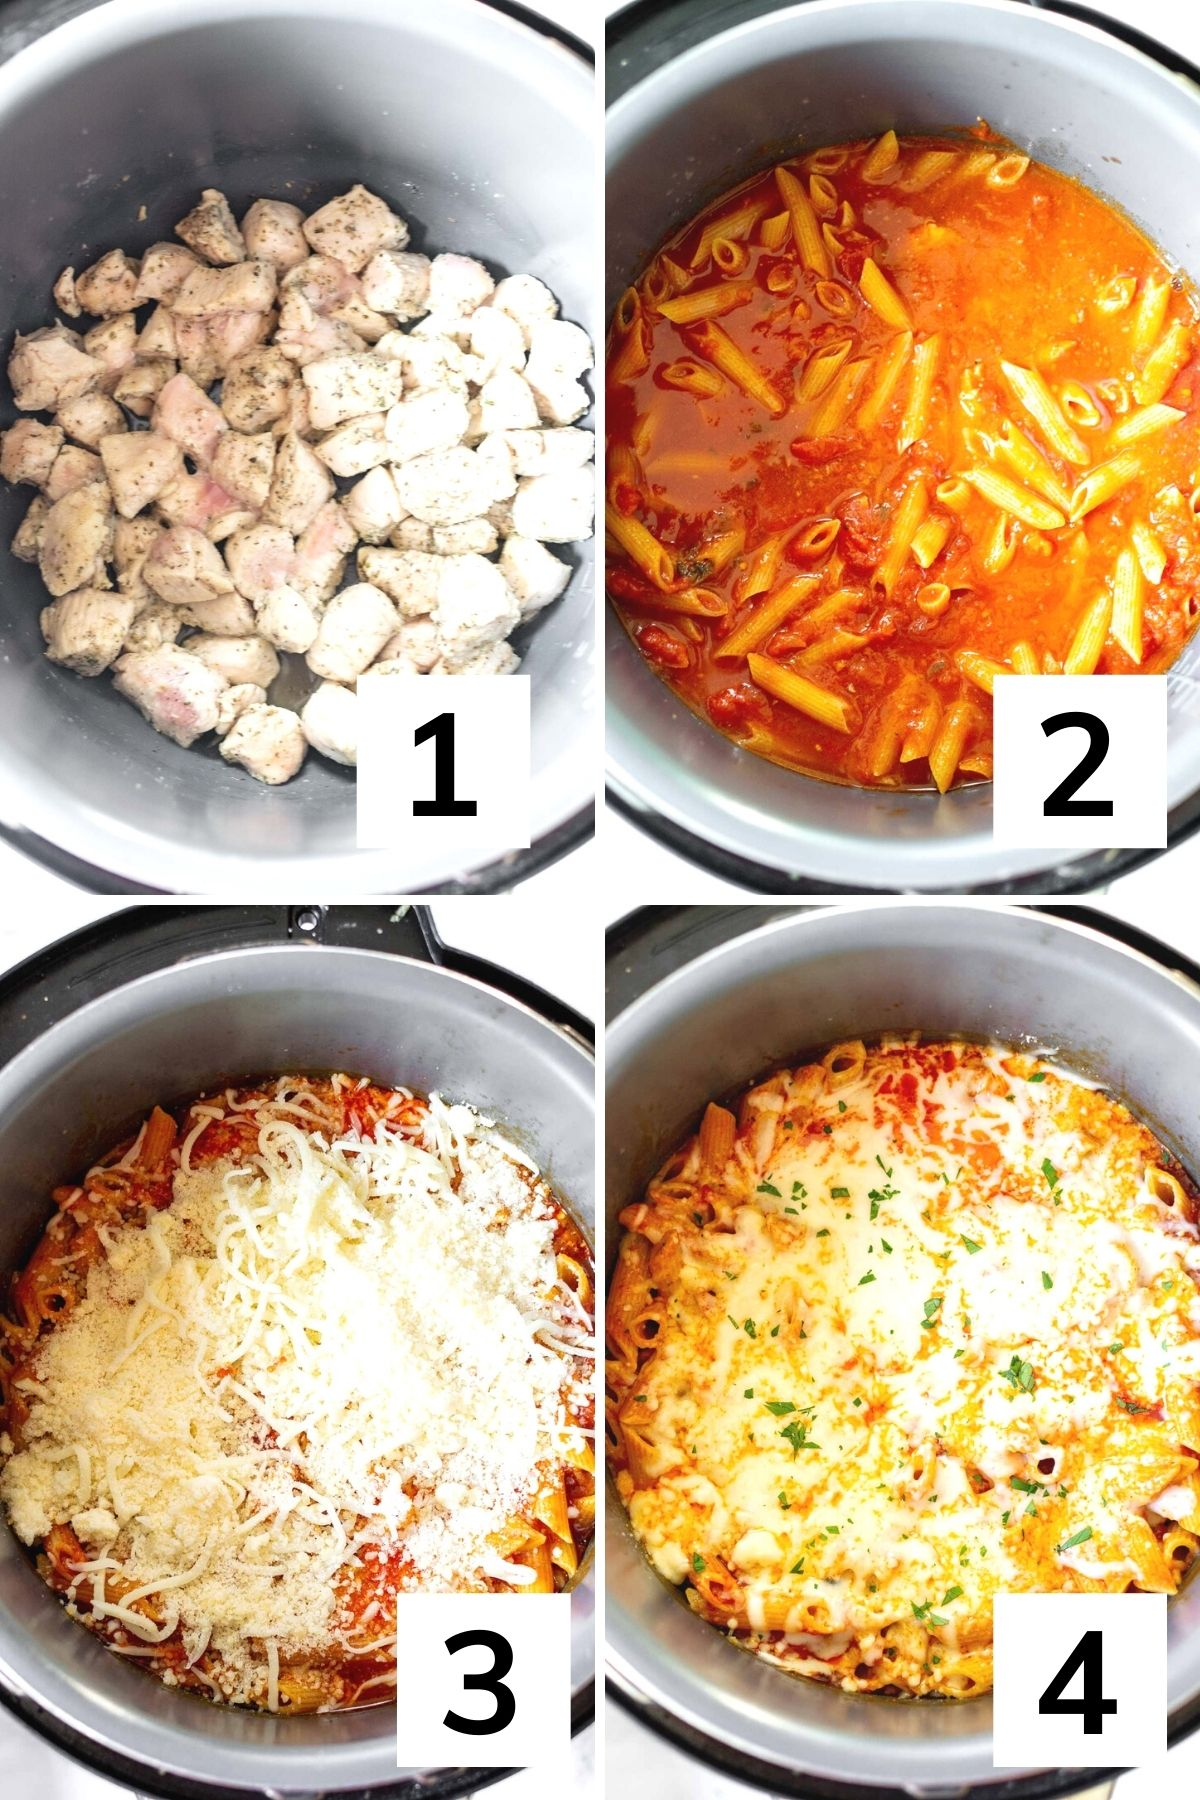 How to make instant pot penne pasta step by step